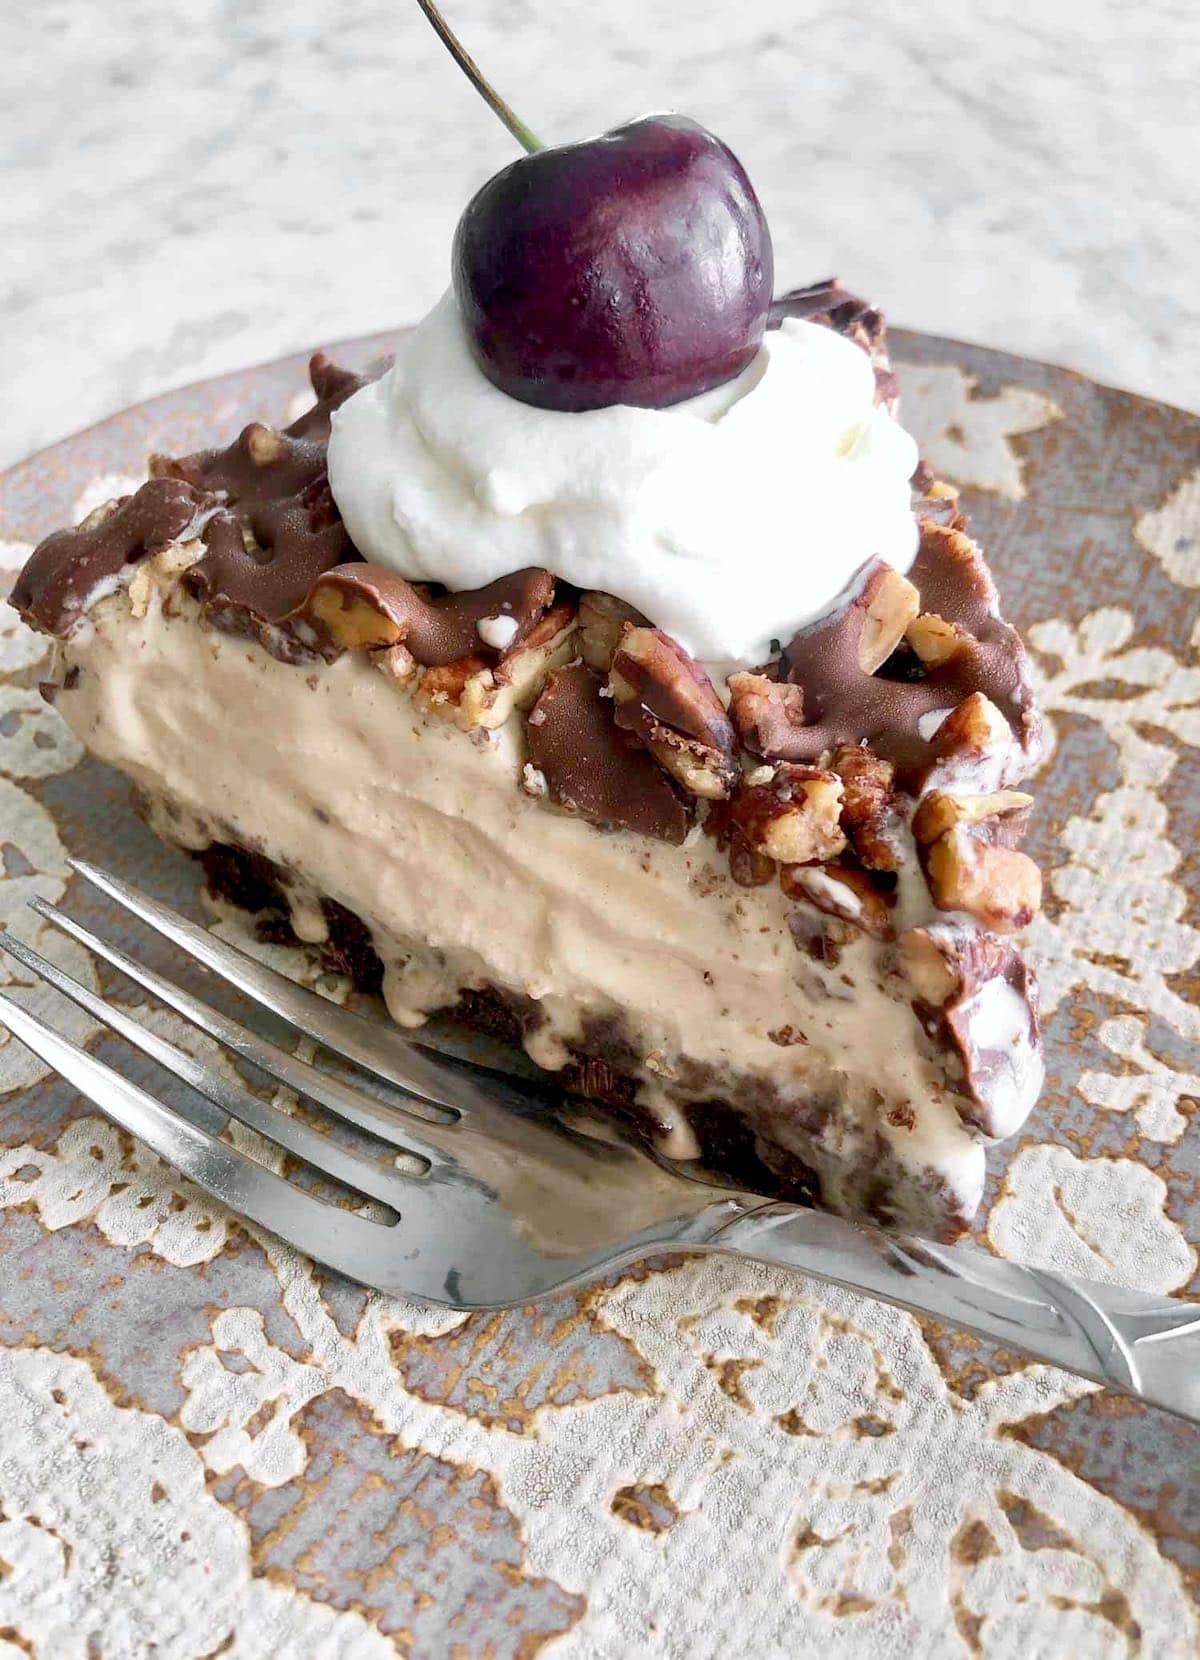 slice of mocha latte ice cream pie on a floral plate.